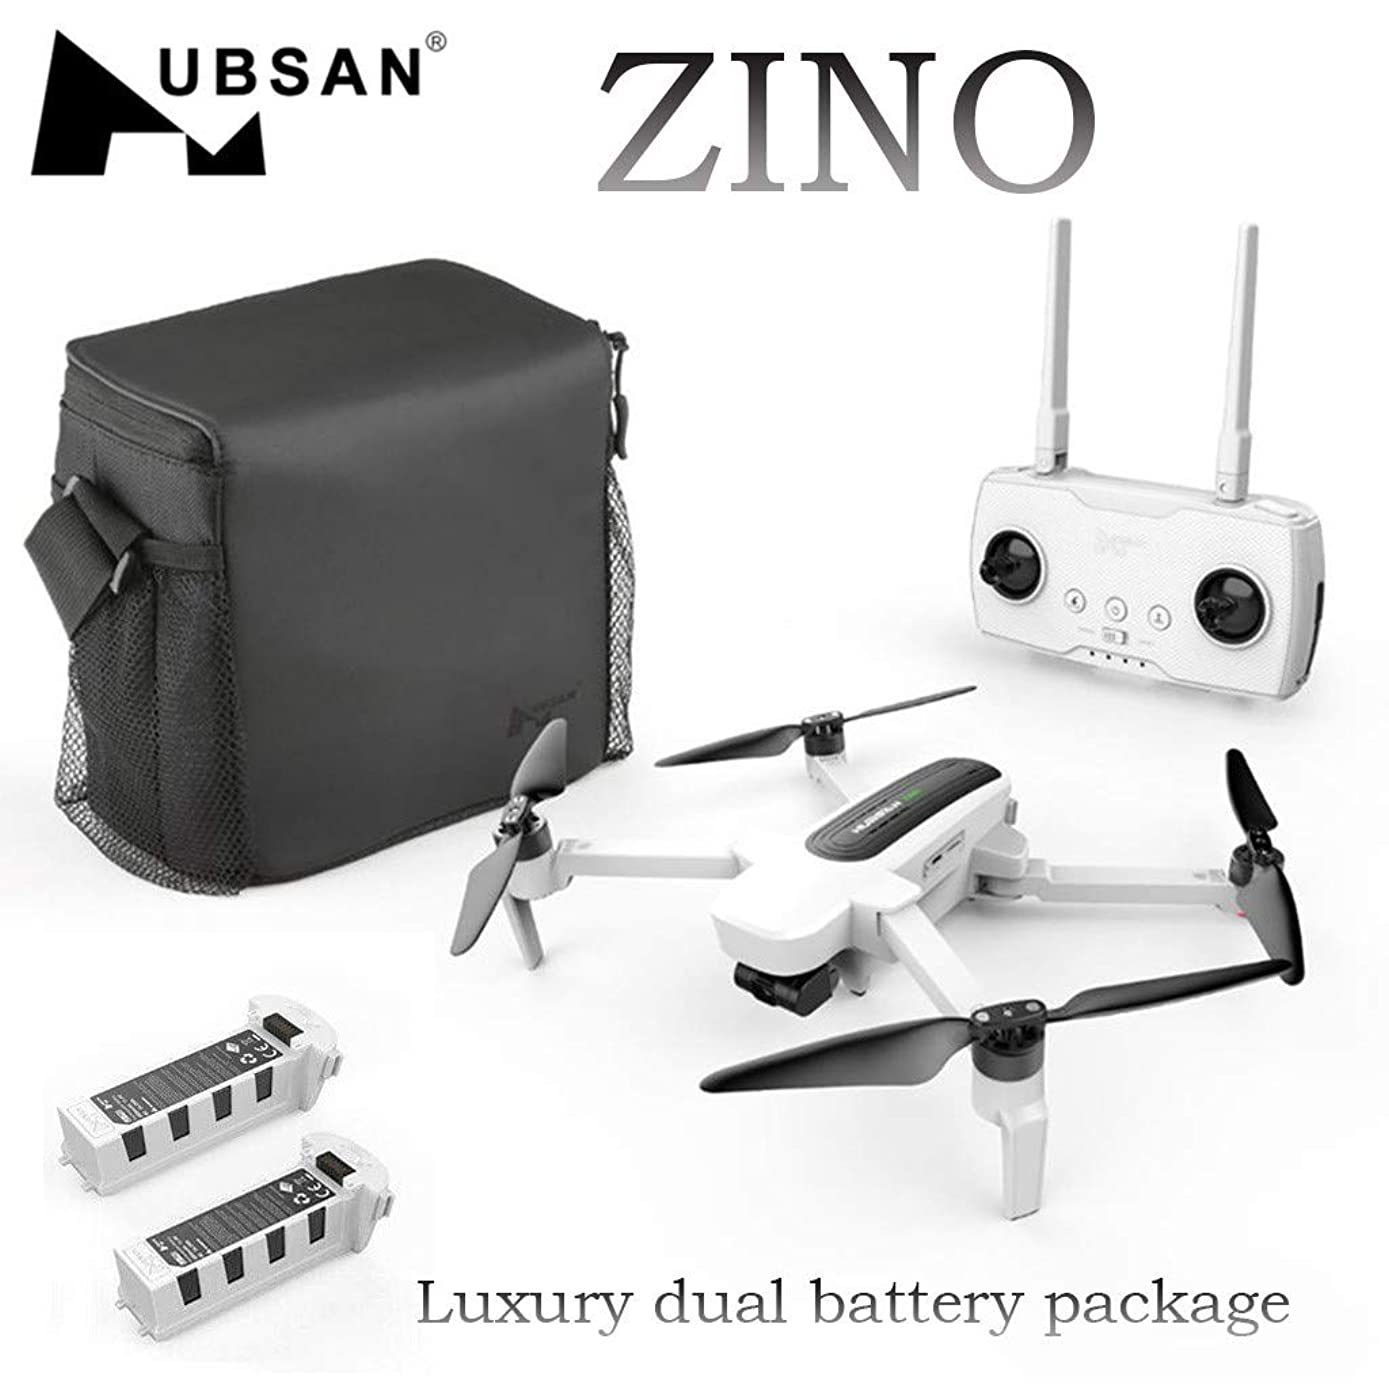 HUBSAN New Zino Drone,with 4K Camera H117S GPS WiFi 5G Brushless Motor, Foldable Arm Quadcopter,with Gesture Video,APP Control(2XIntelligent Flightbattery) (White)